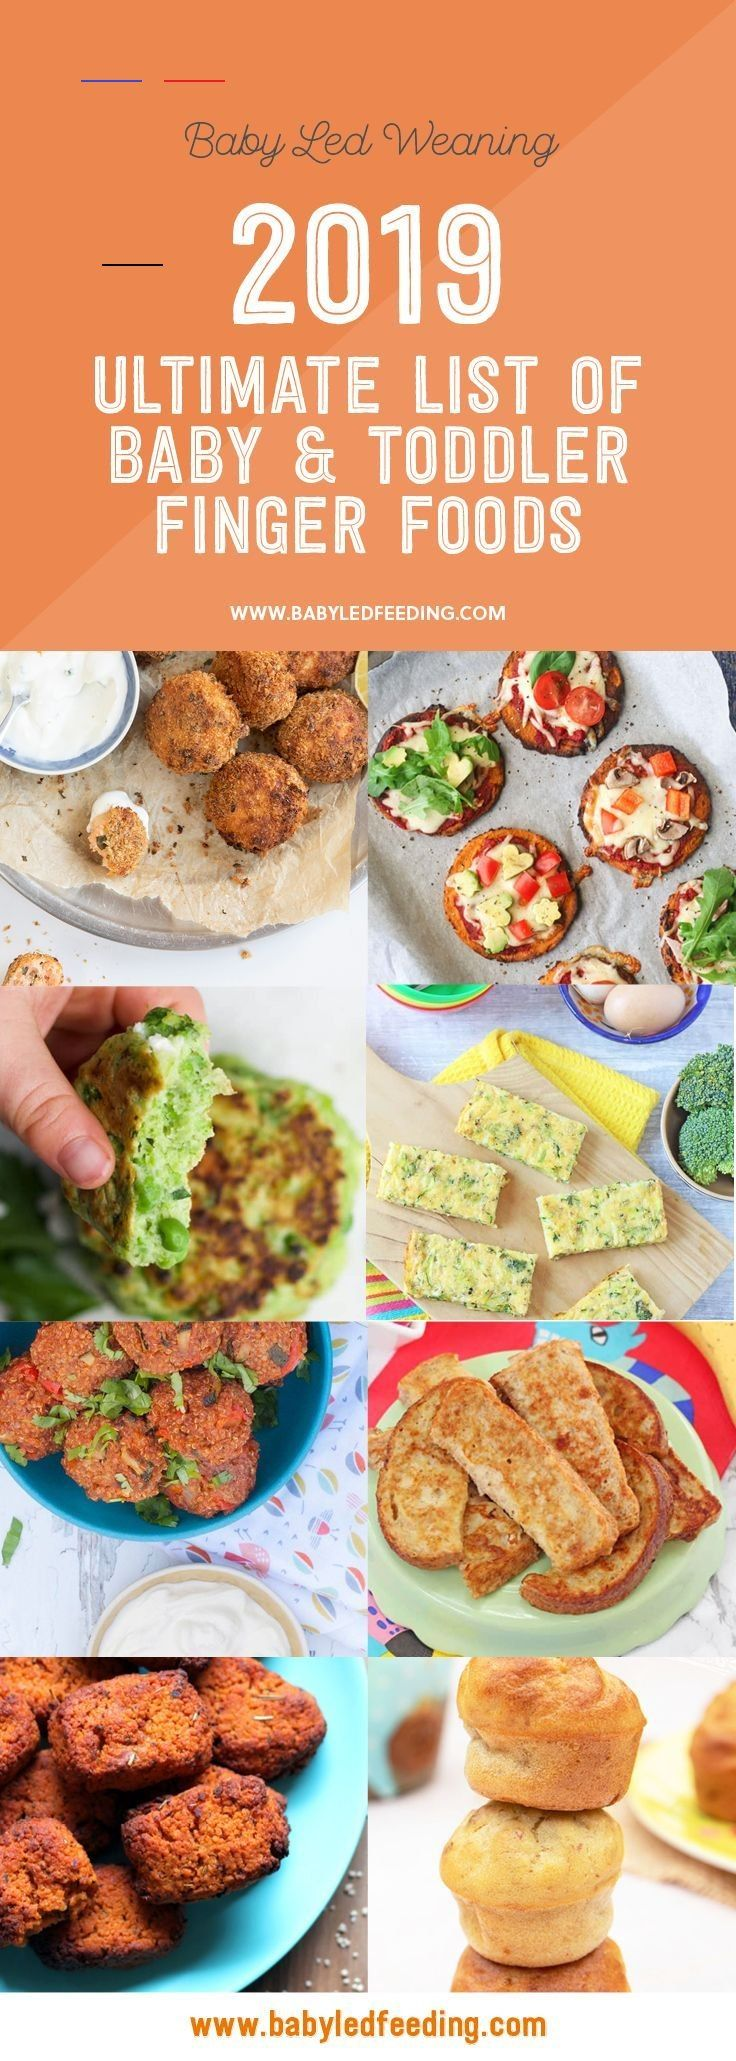 2019s ultimate list of baby and toddler finger foods